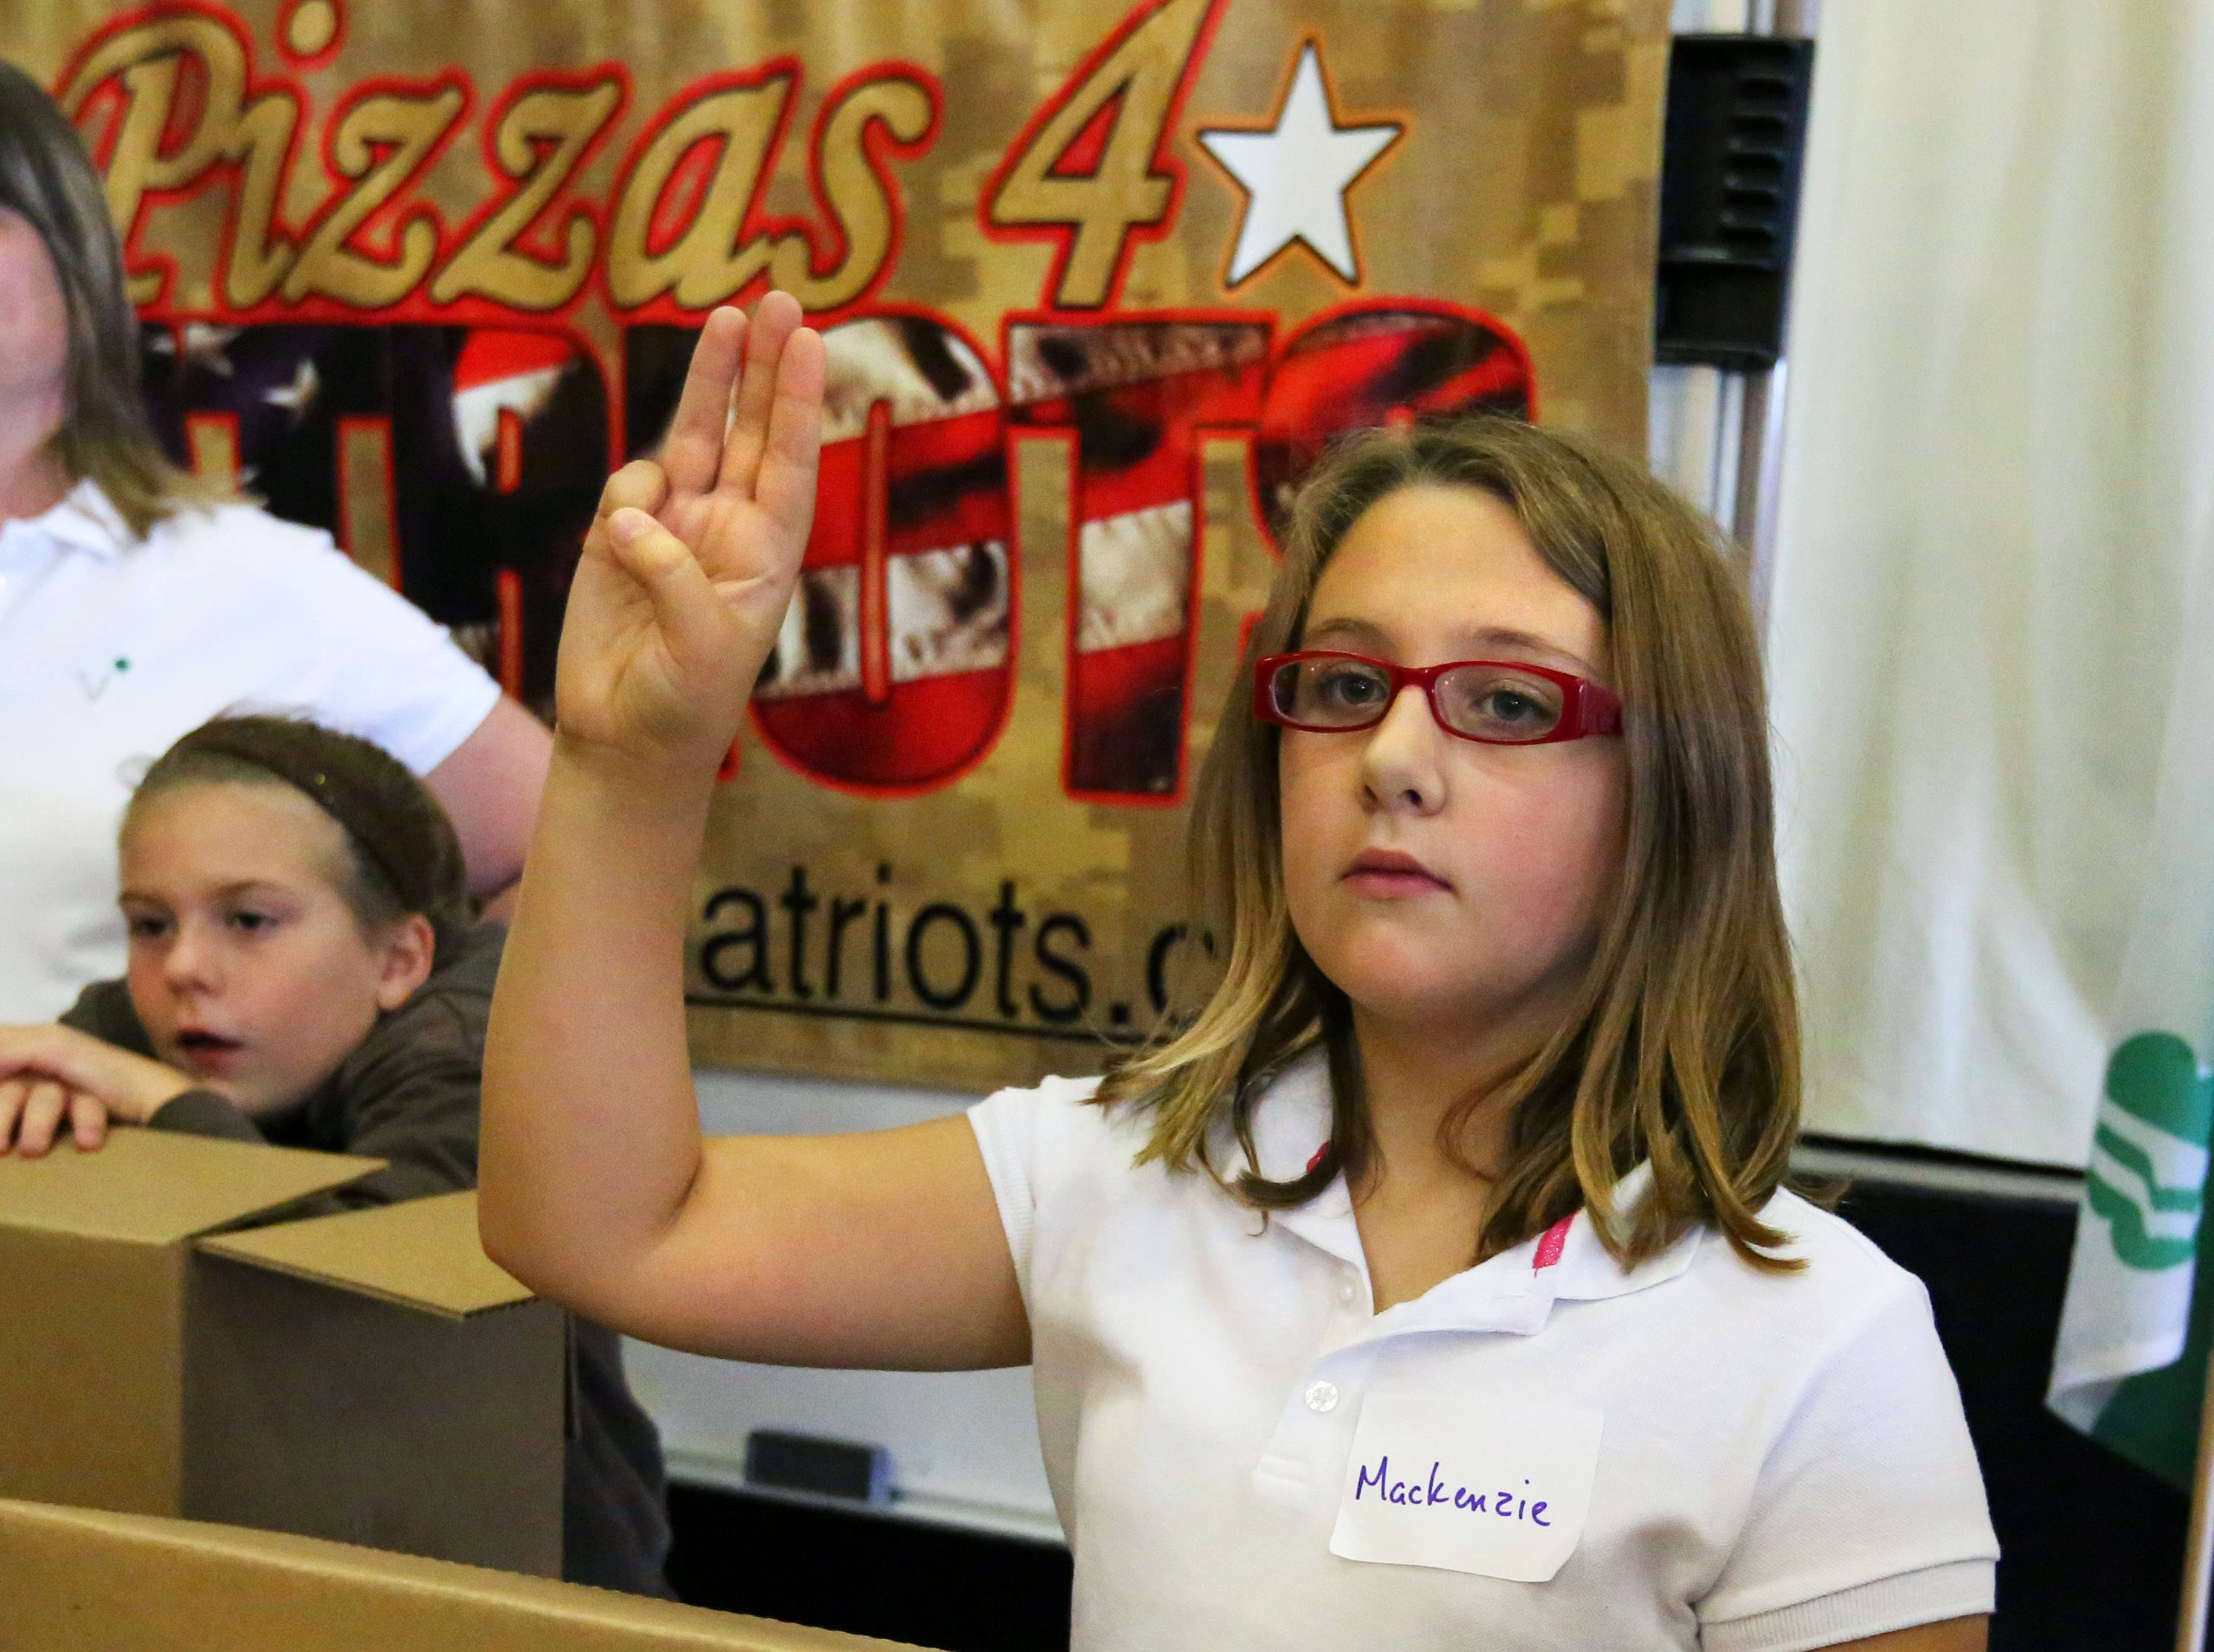 Vowing to do her part as a Girl Scout, Mackenzie Nylander, 11, of Elk Grove Village, makes the Scout sign. Leader Frances Lehning organized girls at Lutheran Church of the Holy Spirit in Elk Grove Village, where they packed 13,000 boxes of Girl Scout cookies to be shipped to veterans in all 50 states.